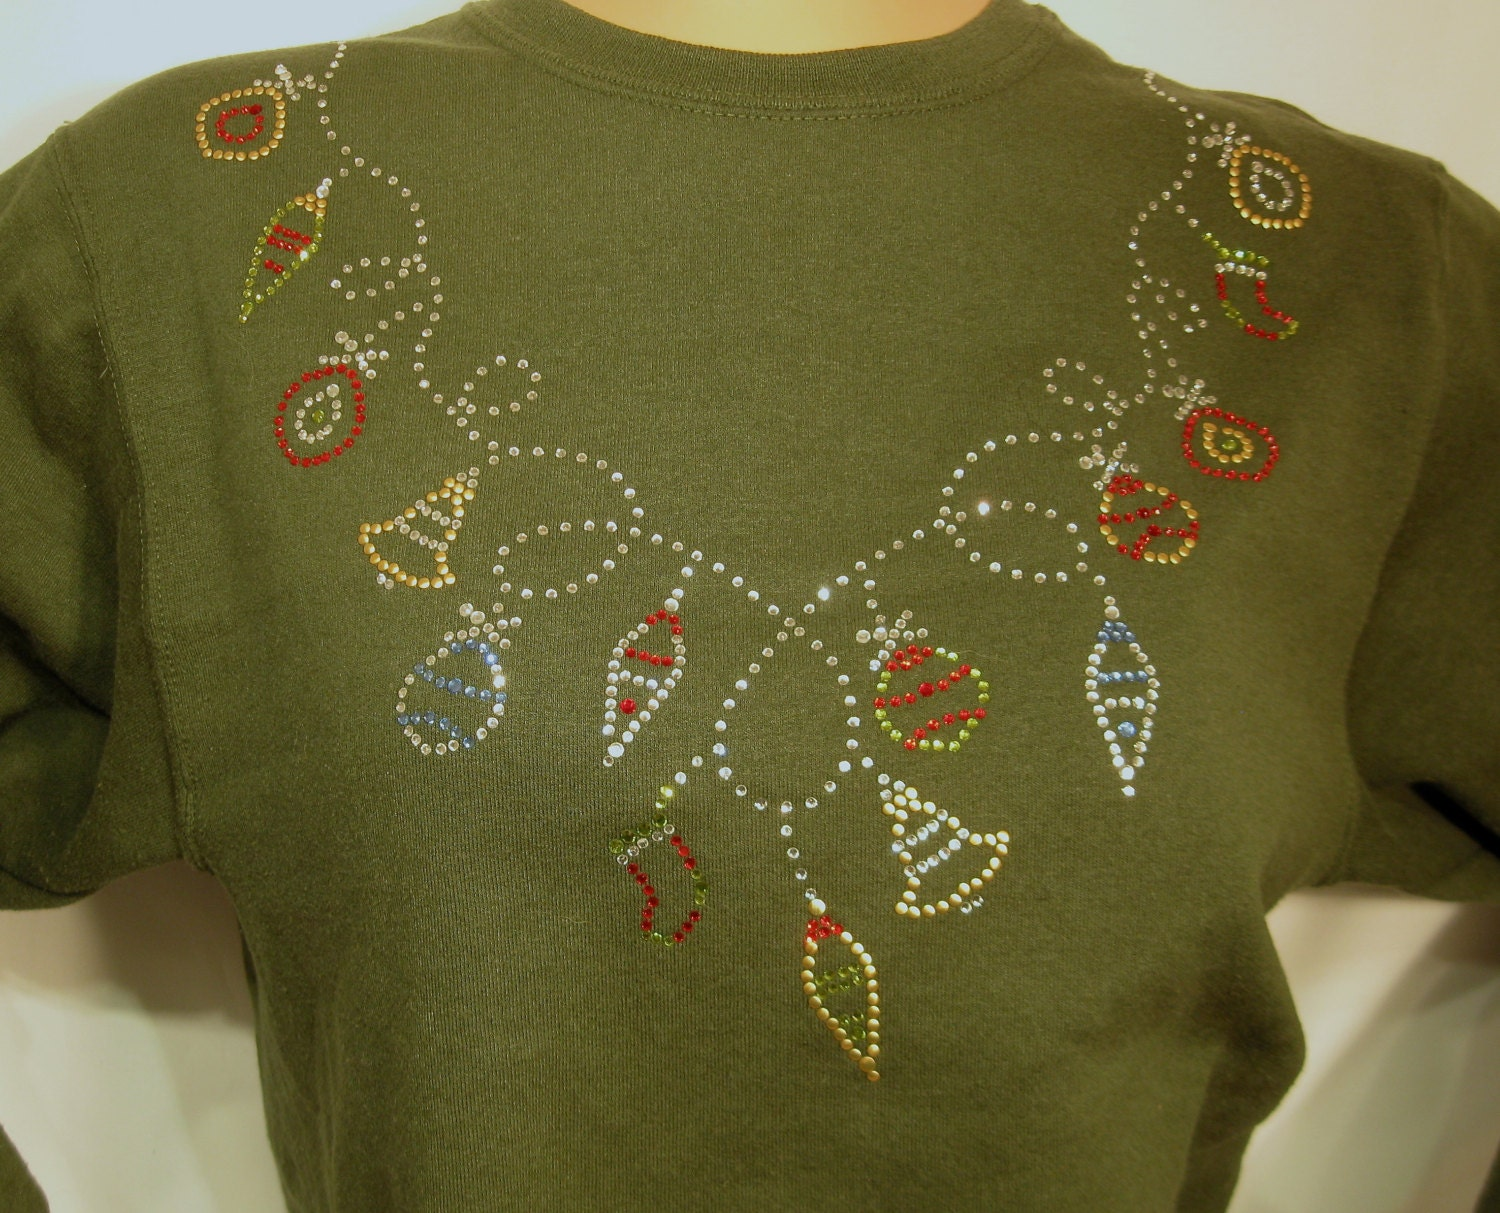 Green holiday pull over crew neck  50/50 poly- cotton blend sweatshirt.  Small thru 4x sizes available.